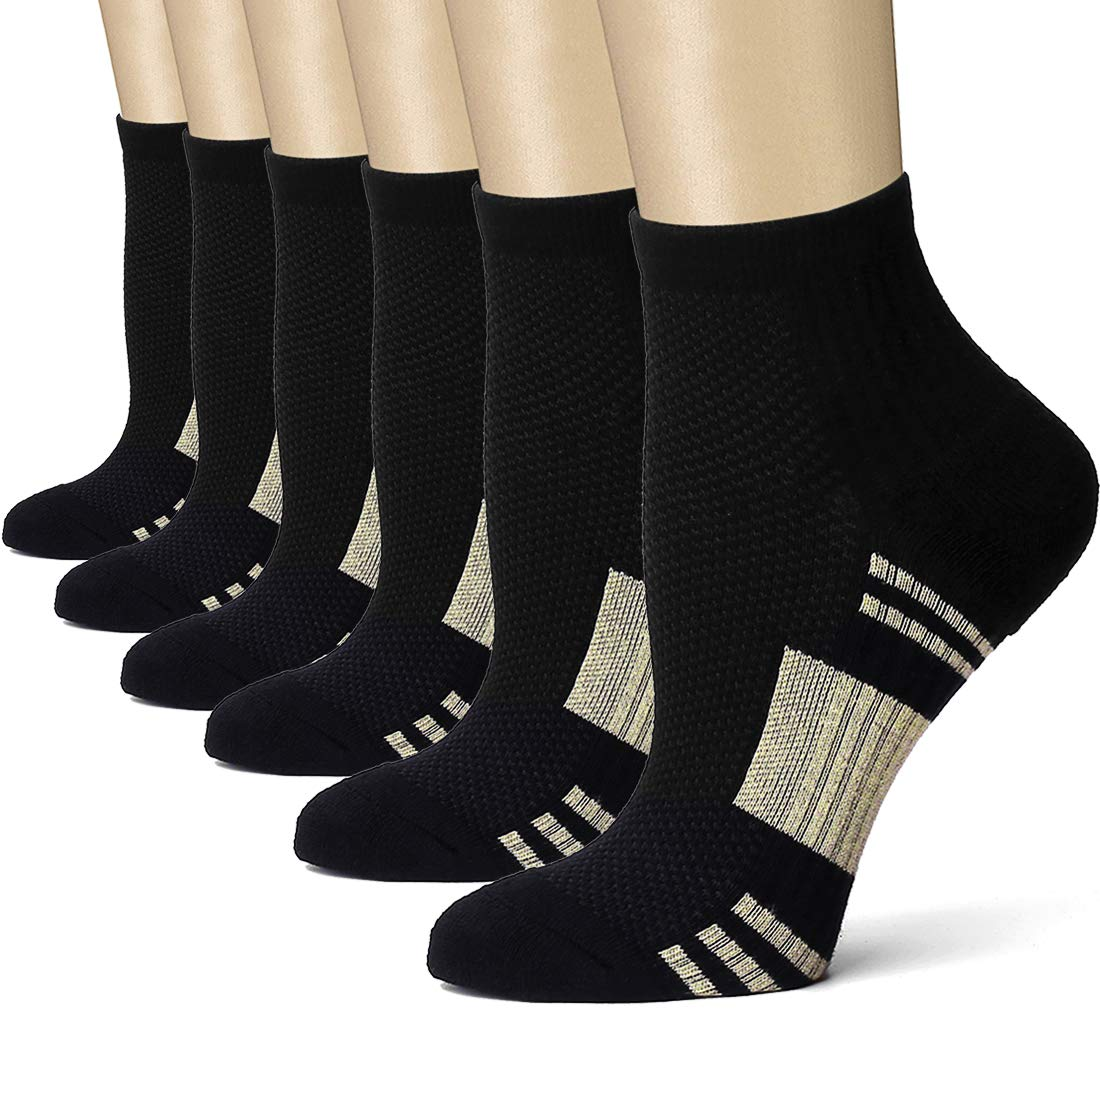 Bluemaple Compression Socks for Women and Men, Compression Ankle Socks, Regular wear, Fashion wear -Say Goodbye to Your Pain (Assorted8, Small/Medium) by Bluemaple